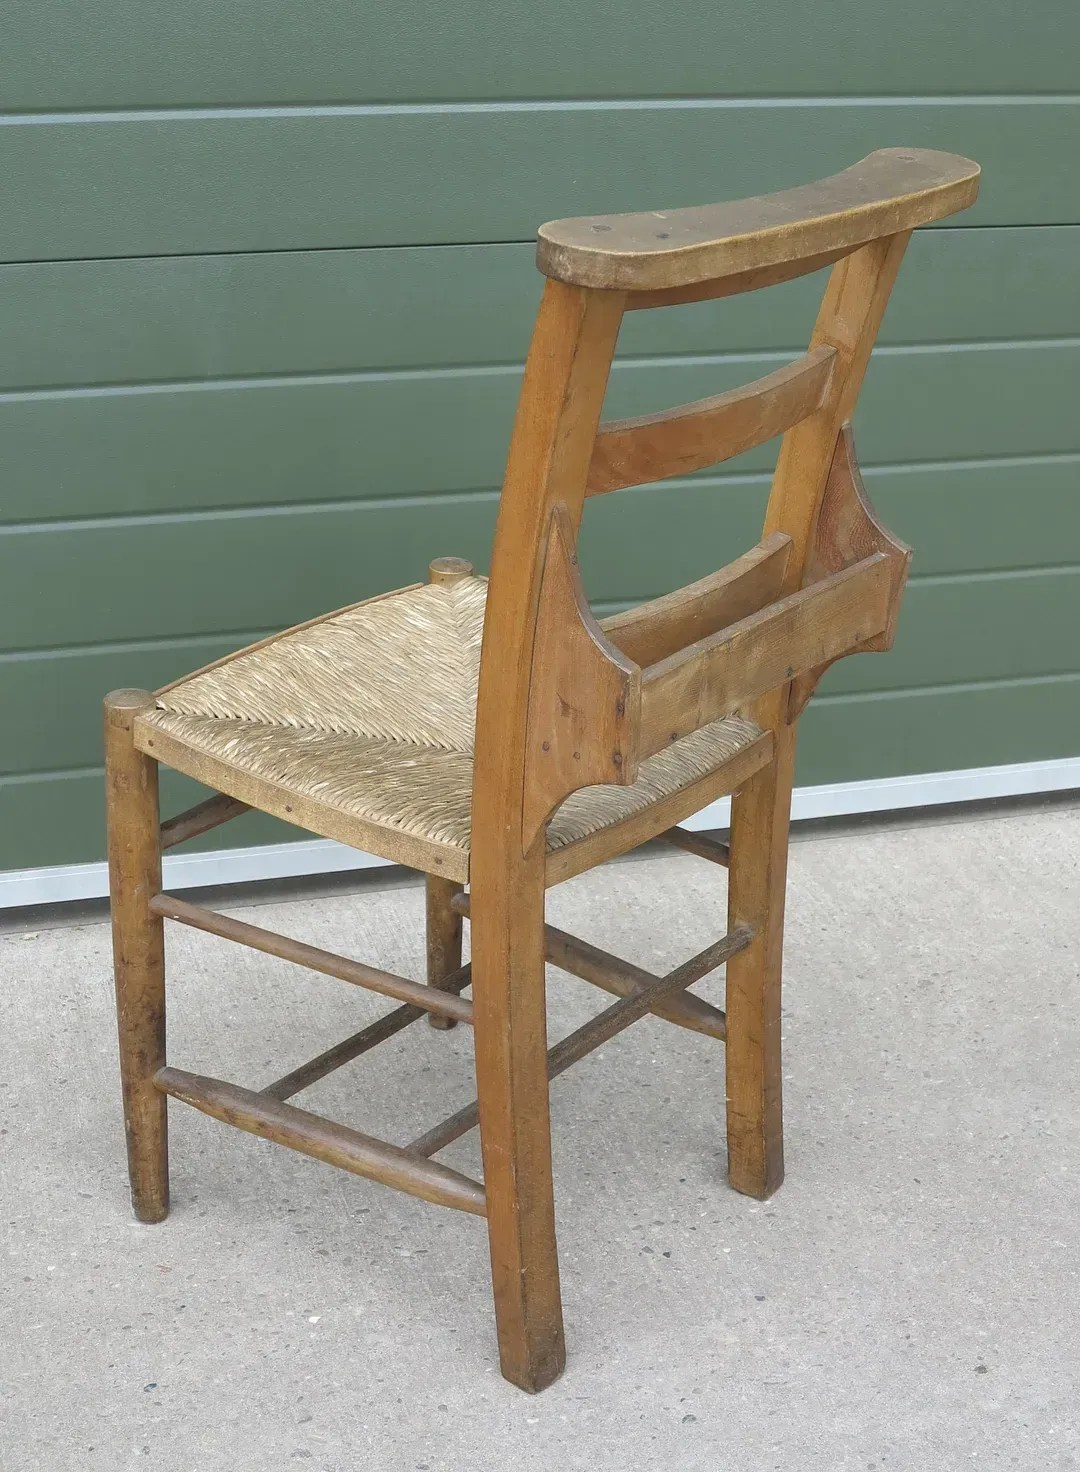 Antique Rush Seated Church Chairs With Bible Holders